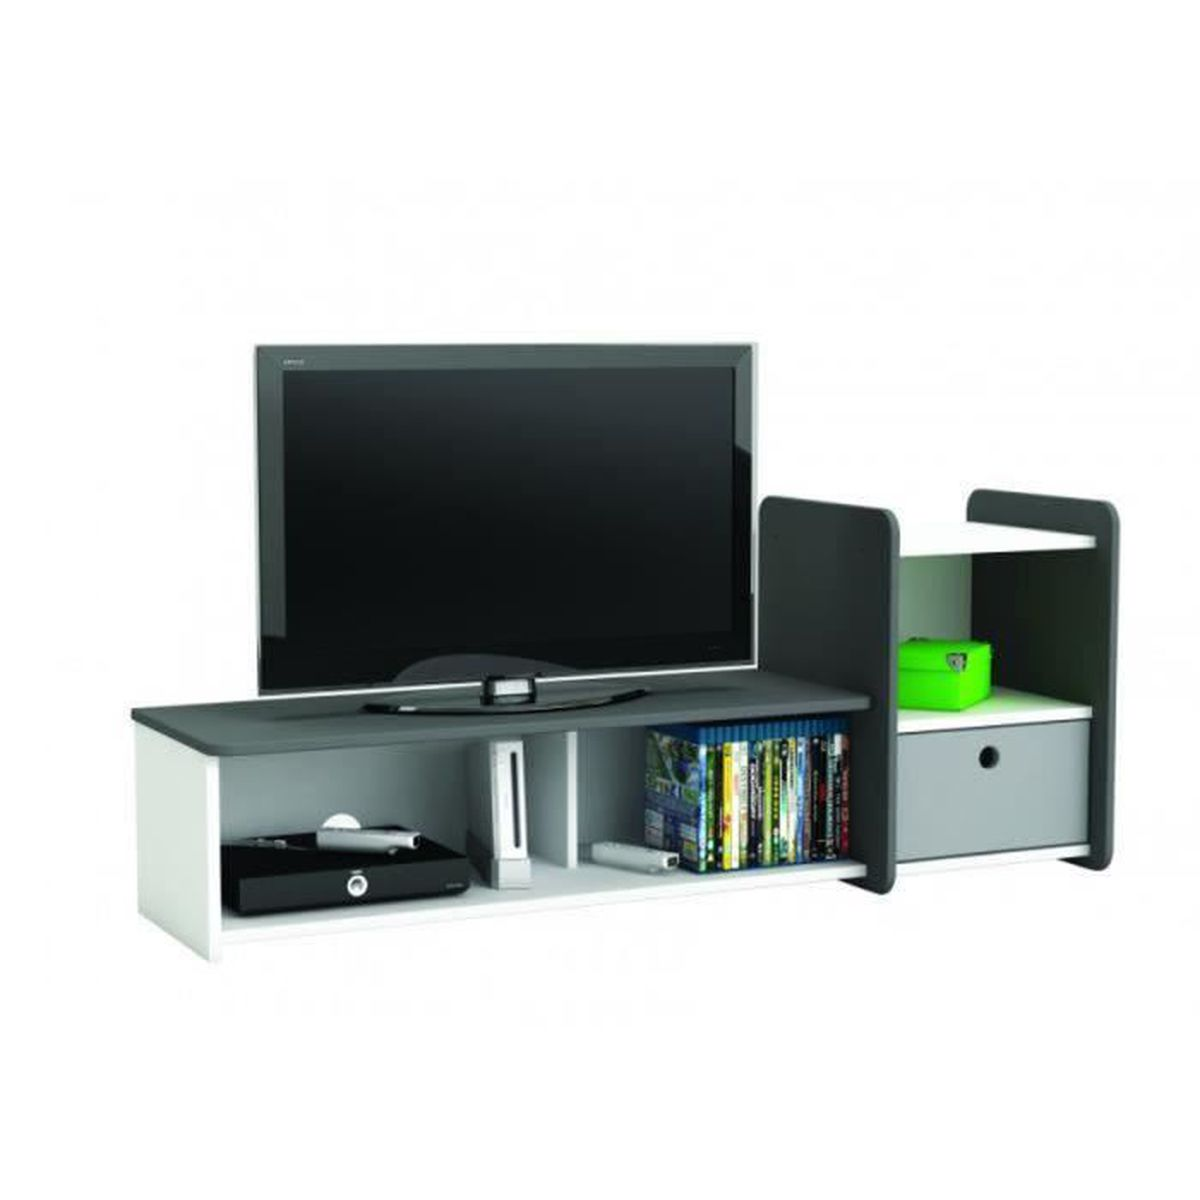 meuble tv sport 3 niches 1 tiroir en panneaux de. Black Bedroom Furniture Sets. Home Design Ideas